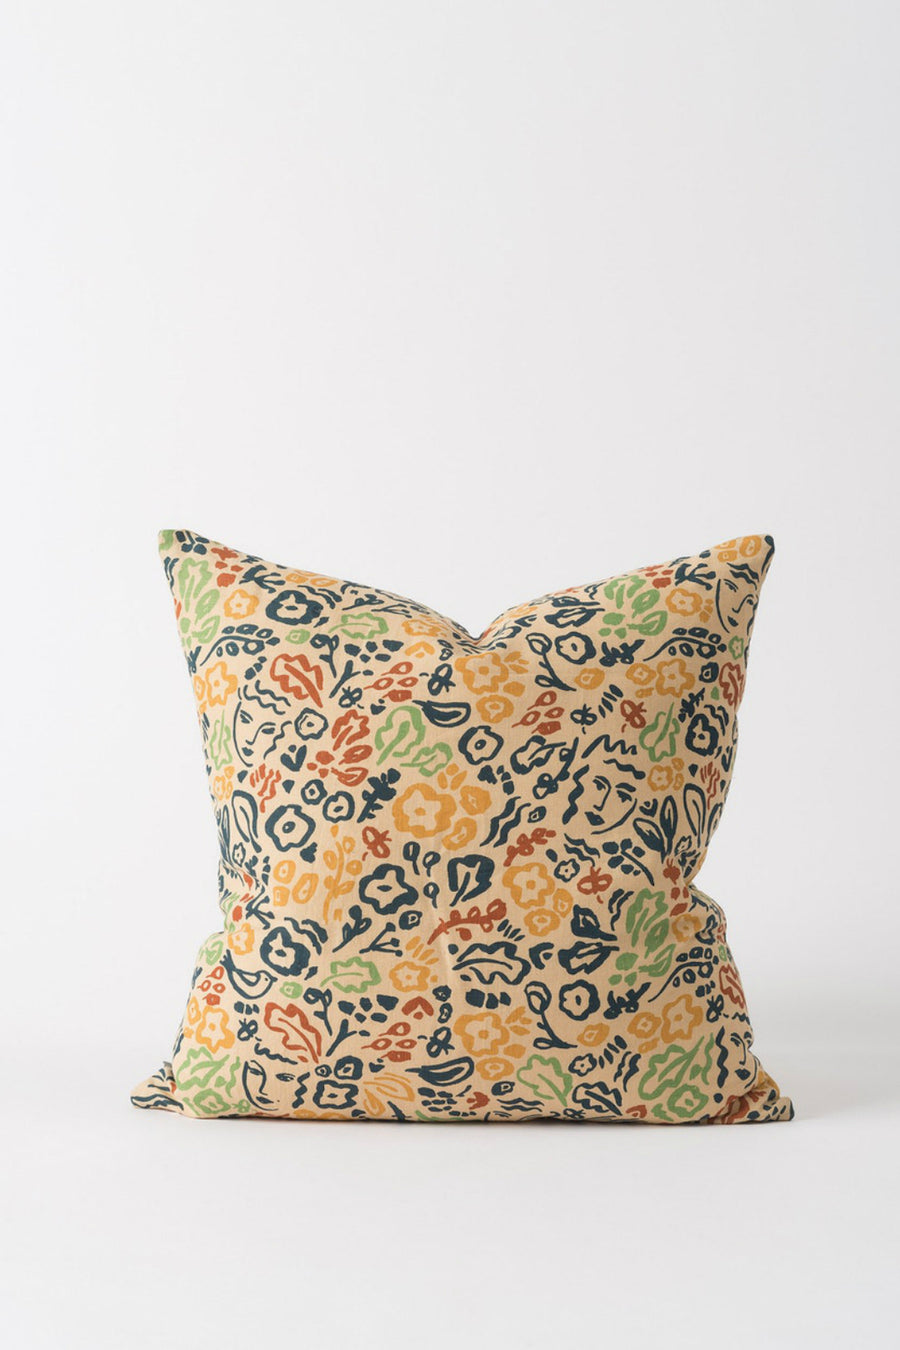 Celia Linen Cushion - Flax/Multi - Shop Online At Mookah - mookah.com.au